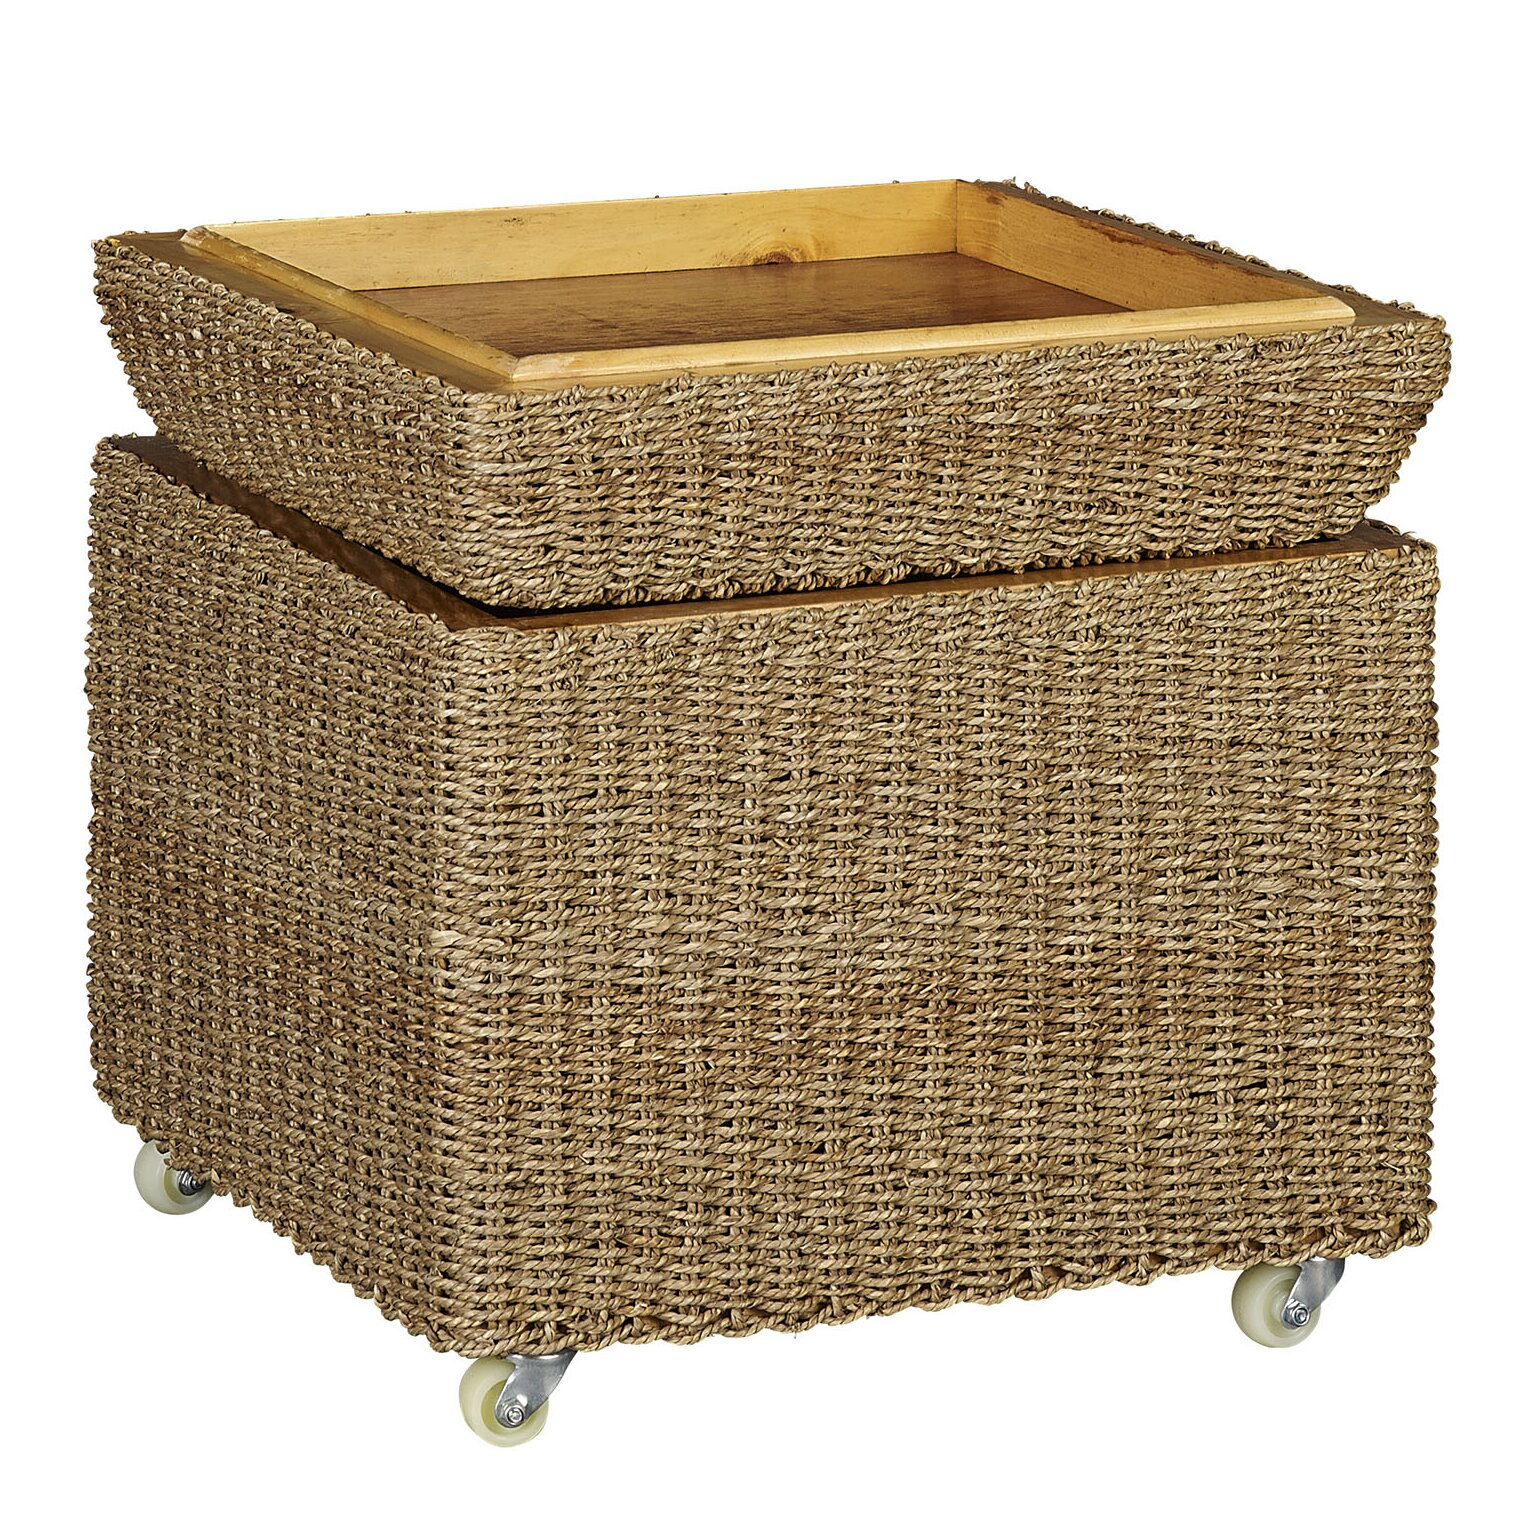 Rolling Coffee Table With Storage: Household Essentials Rolling Seagrass Wicker Storage Seat